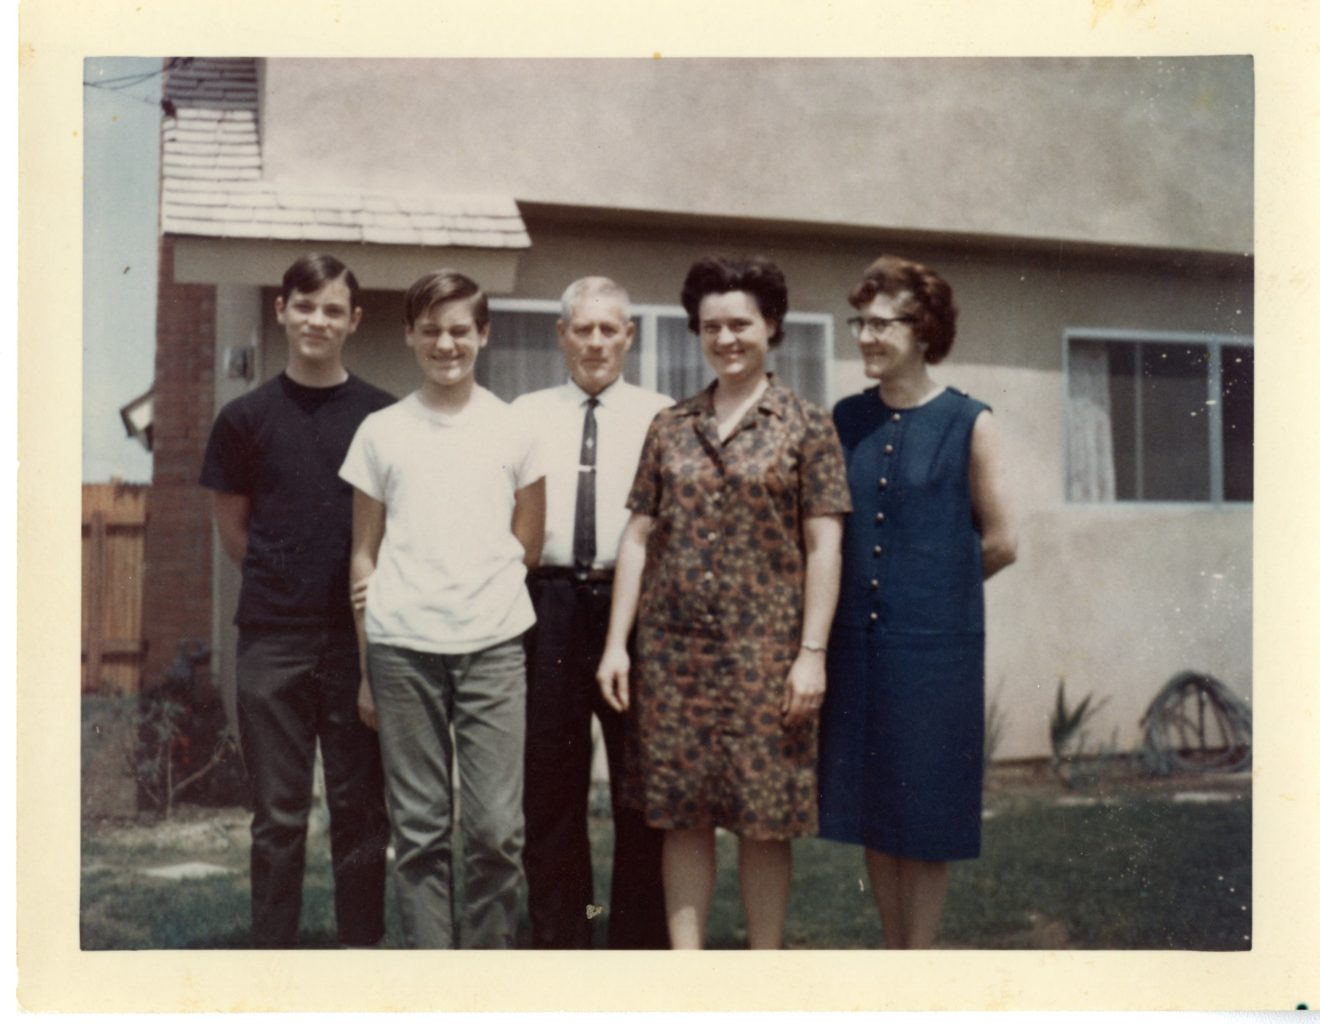 Family of five pose for a photo outside of house.